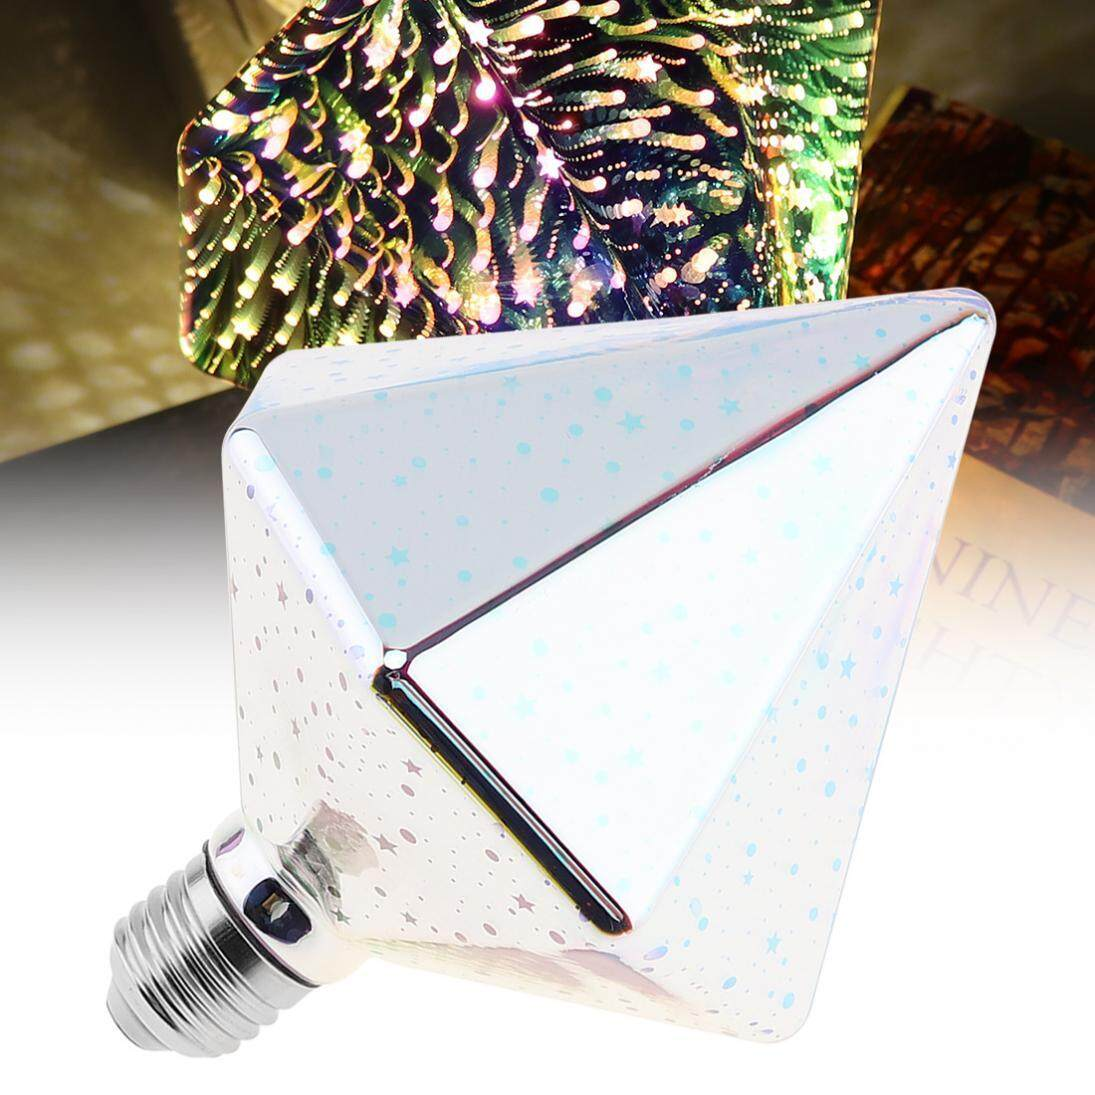 85-265V 7W Color 360 Degree Led Light Bulb Drill Type 3D Decoration Fireworks Bulb